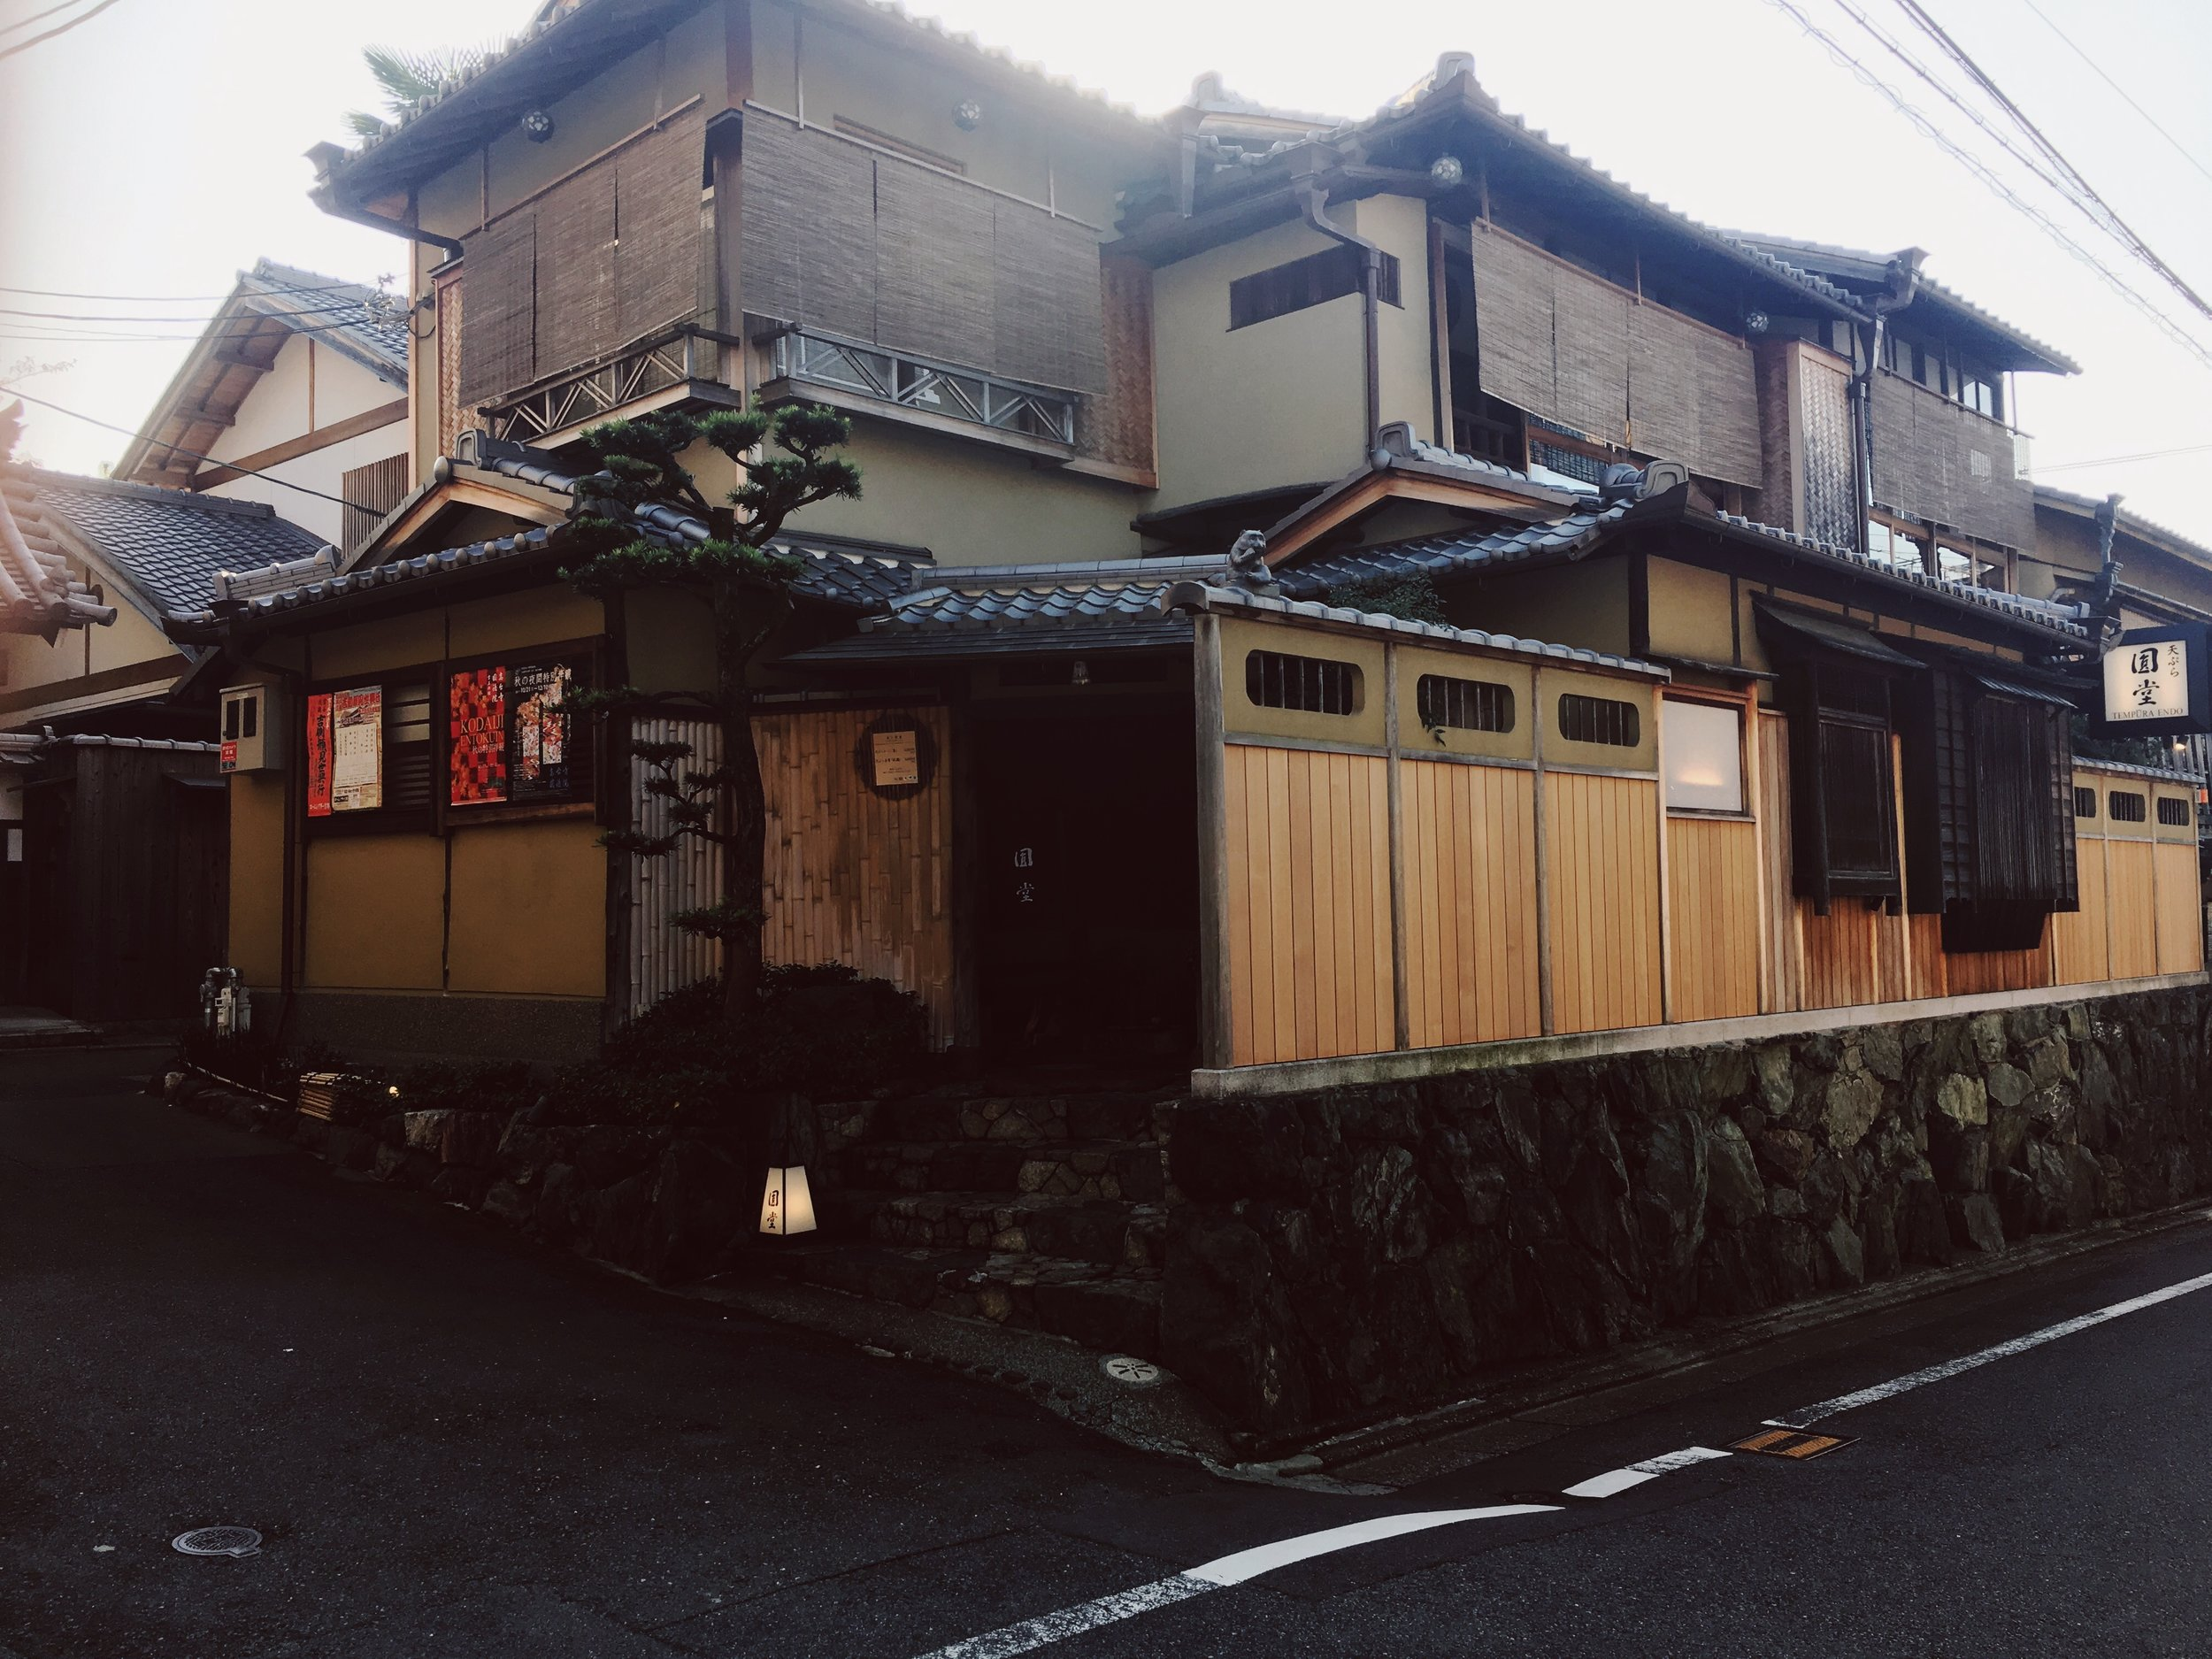 This is a private restaurant in Kyoto, very old building but so beautiful.